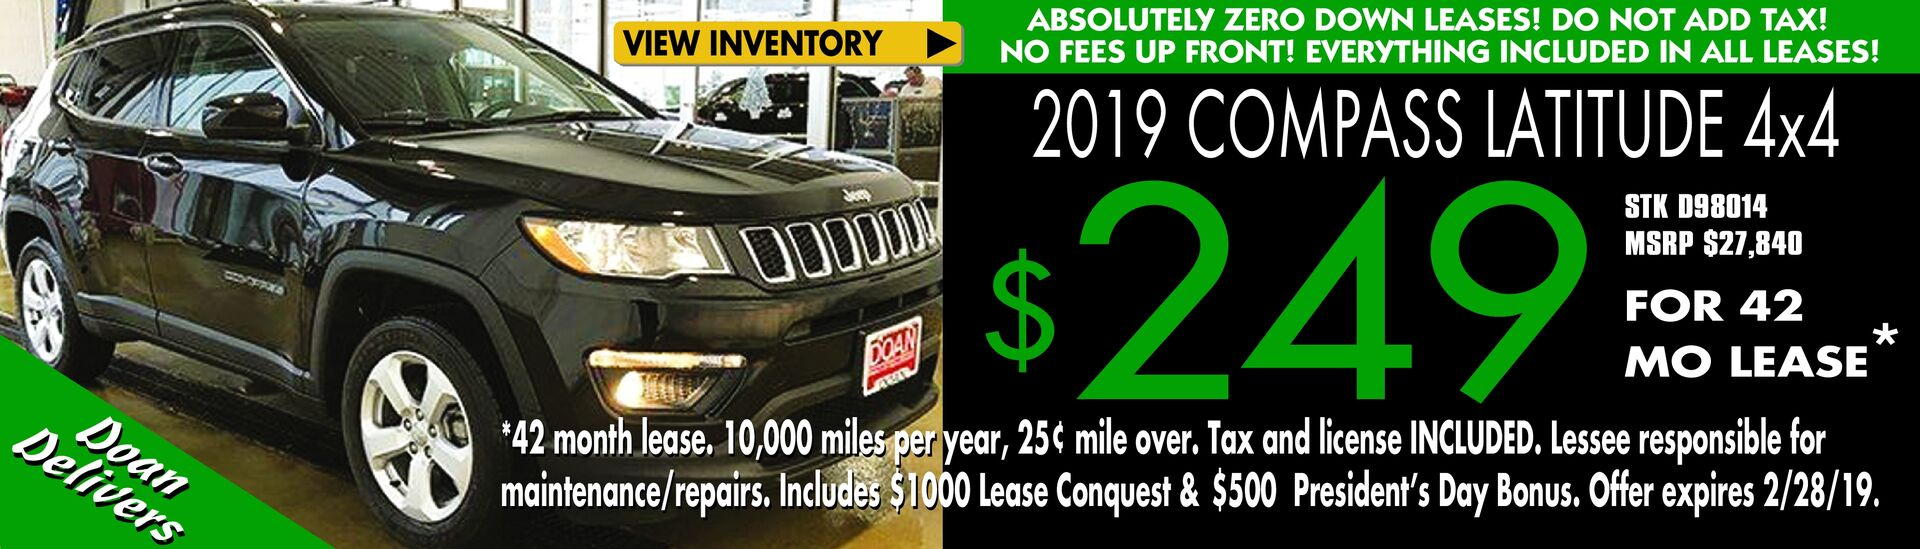 Jeep Compass Lease Deal